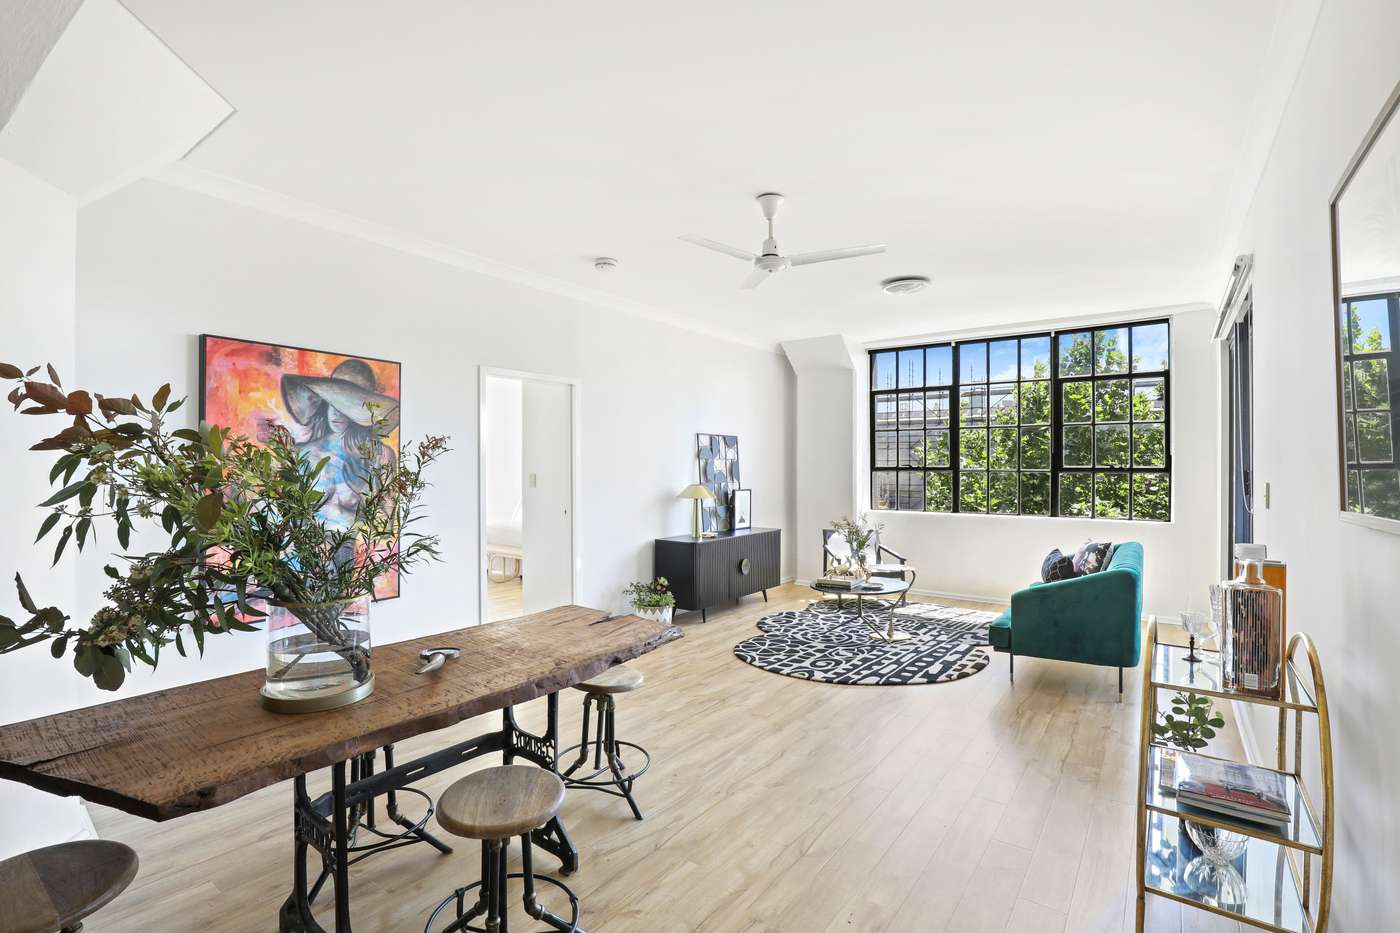 Main view of Homely apartment listing, 308/188 Chalmers Street, Surry Hills, NSW 2010